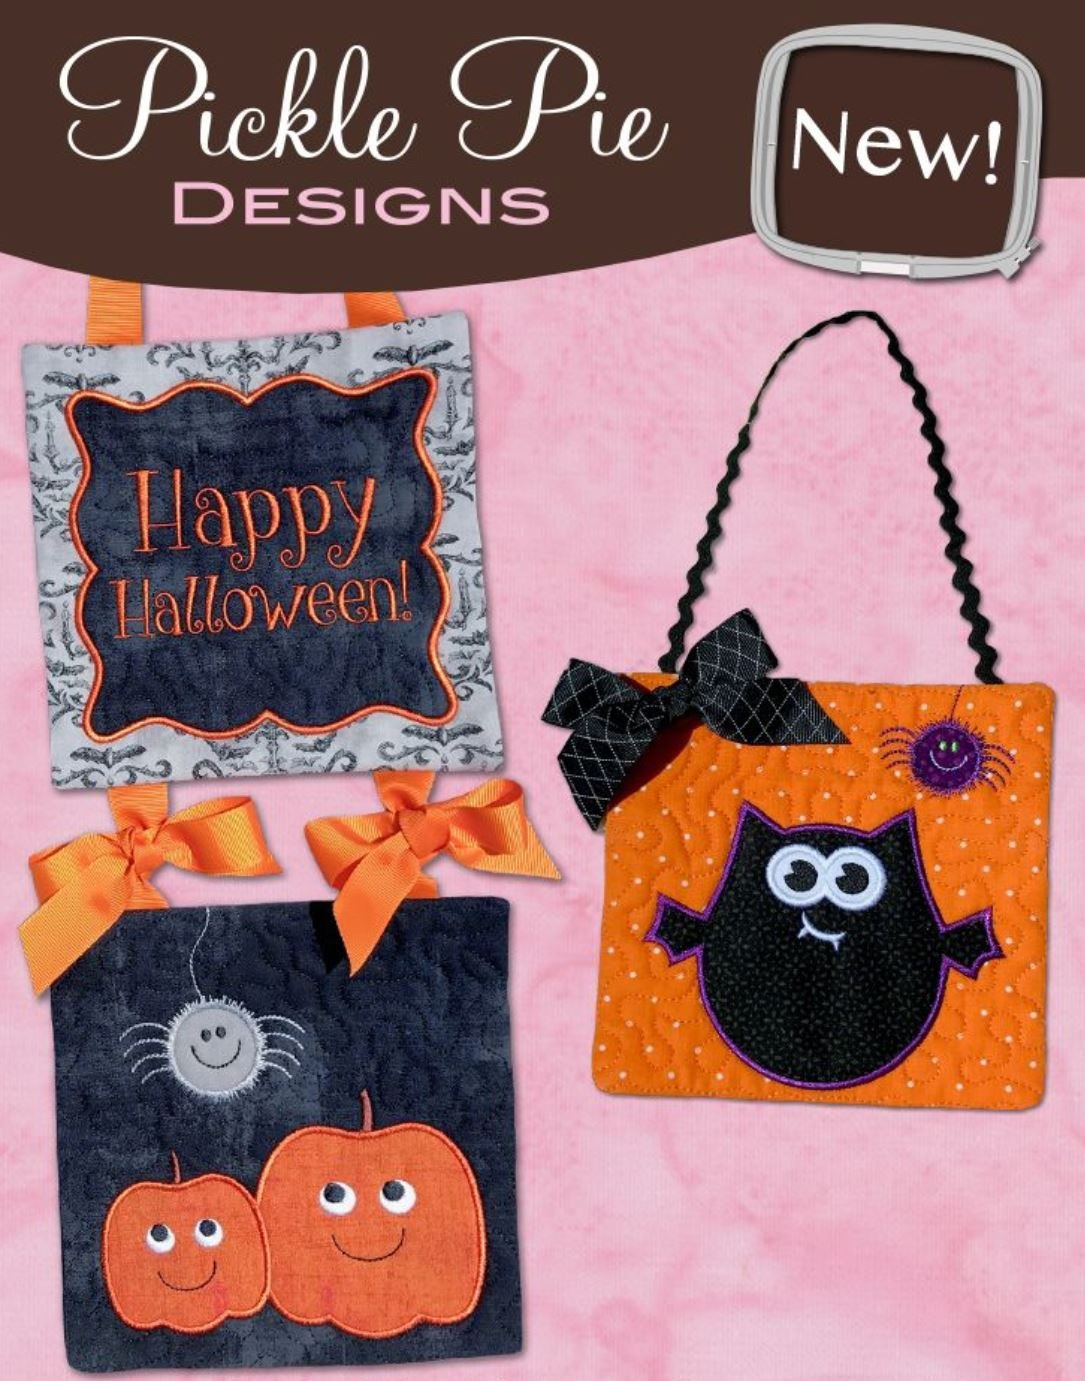 Happy Halloween Pickle Pie Designs